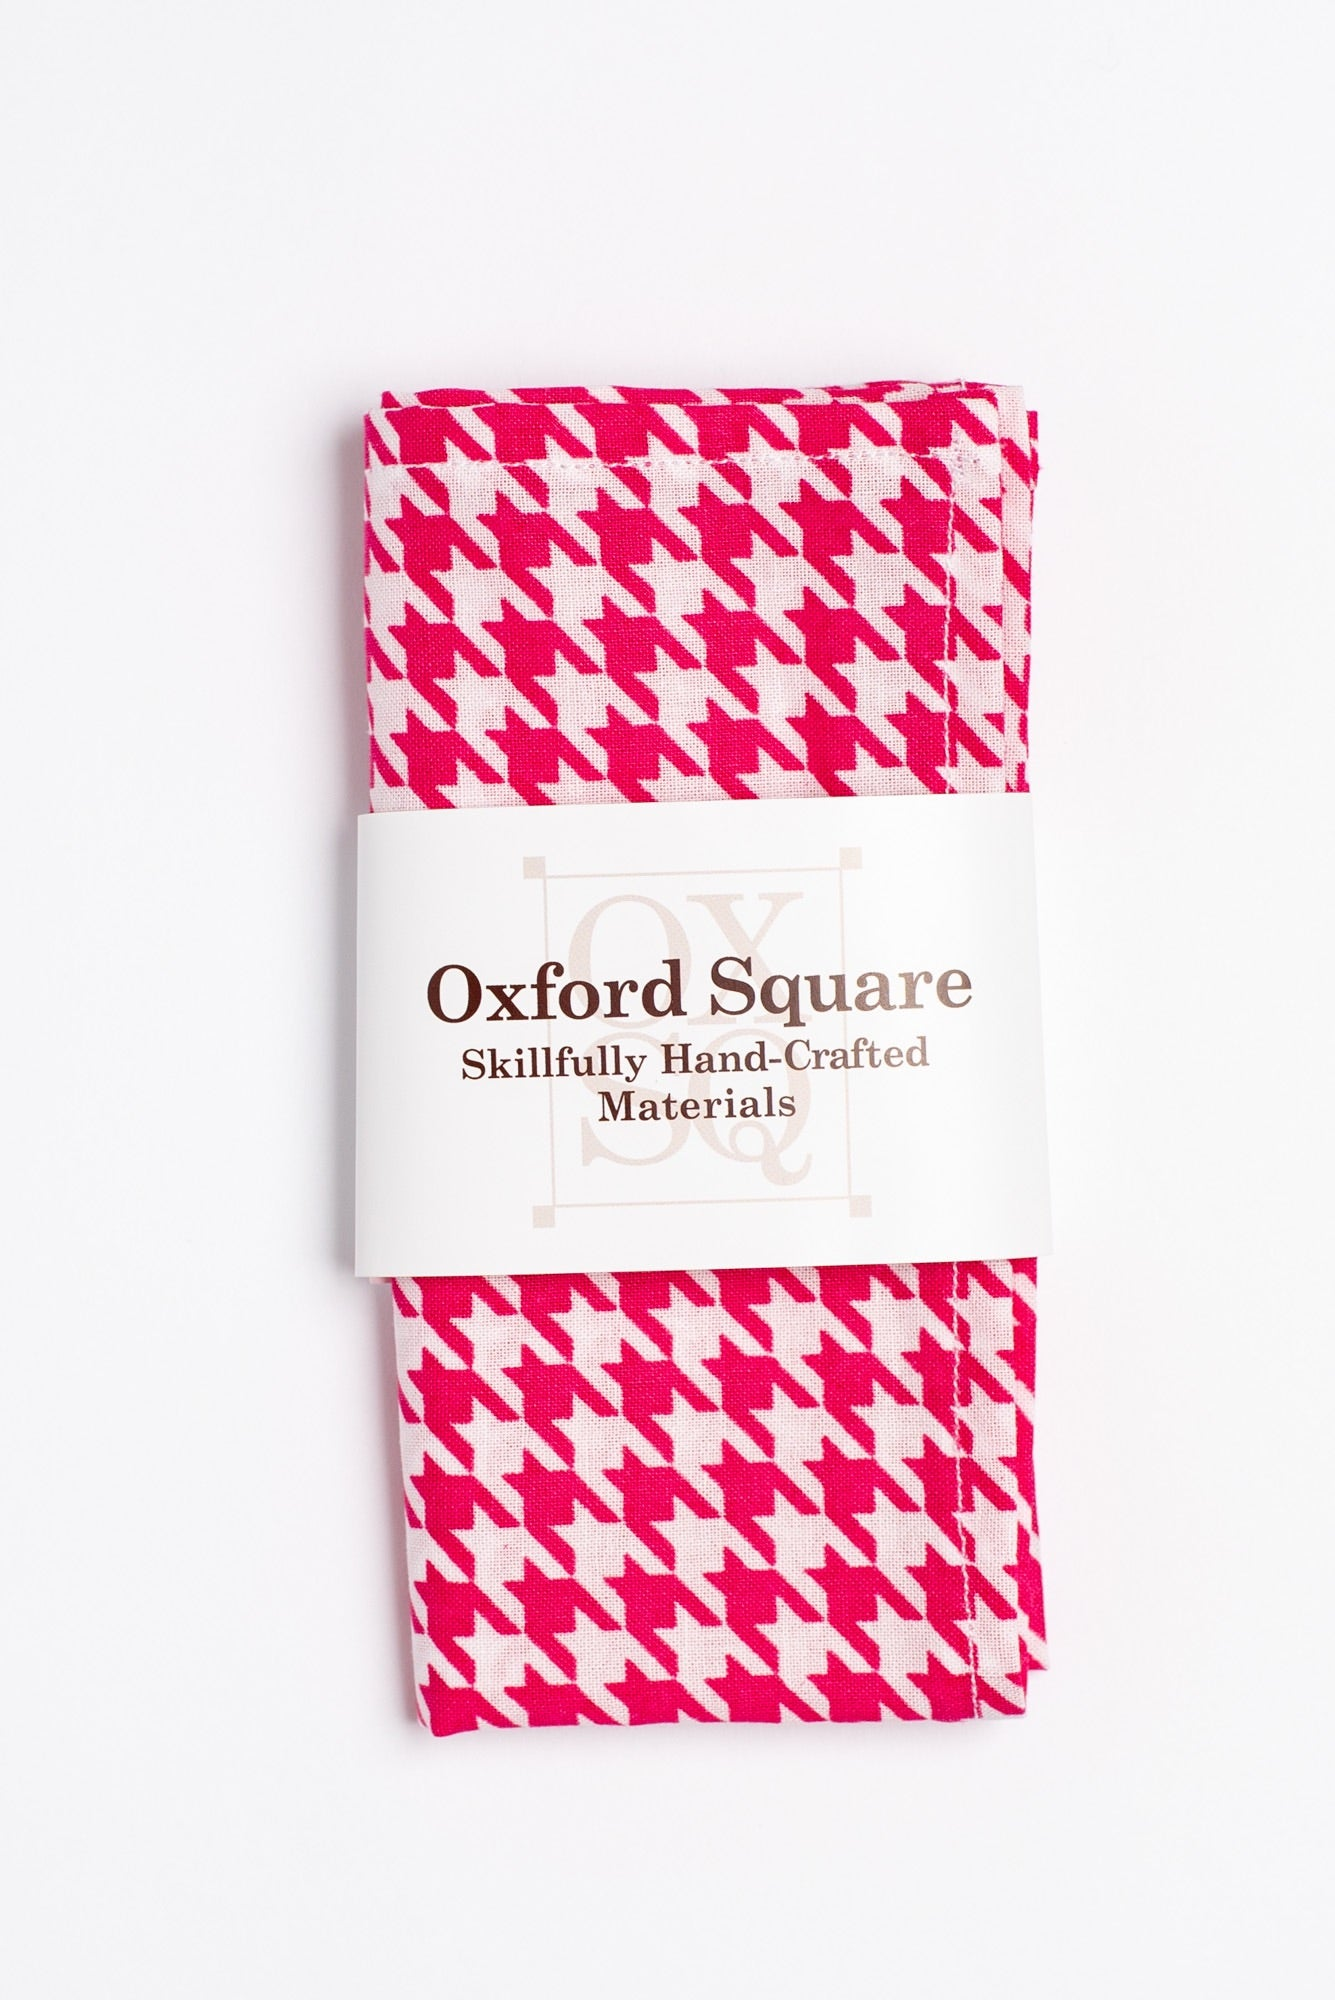 fuchsia and white houndstooth pattern pocket square - Oxford Square